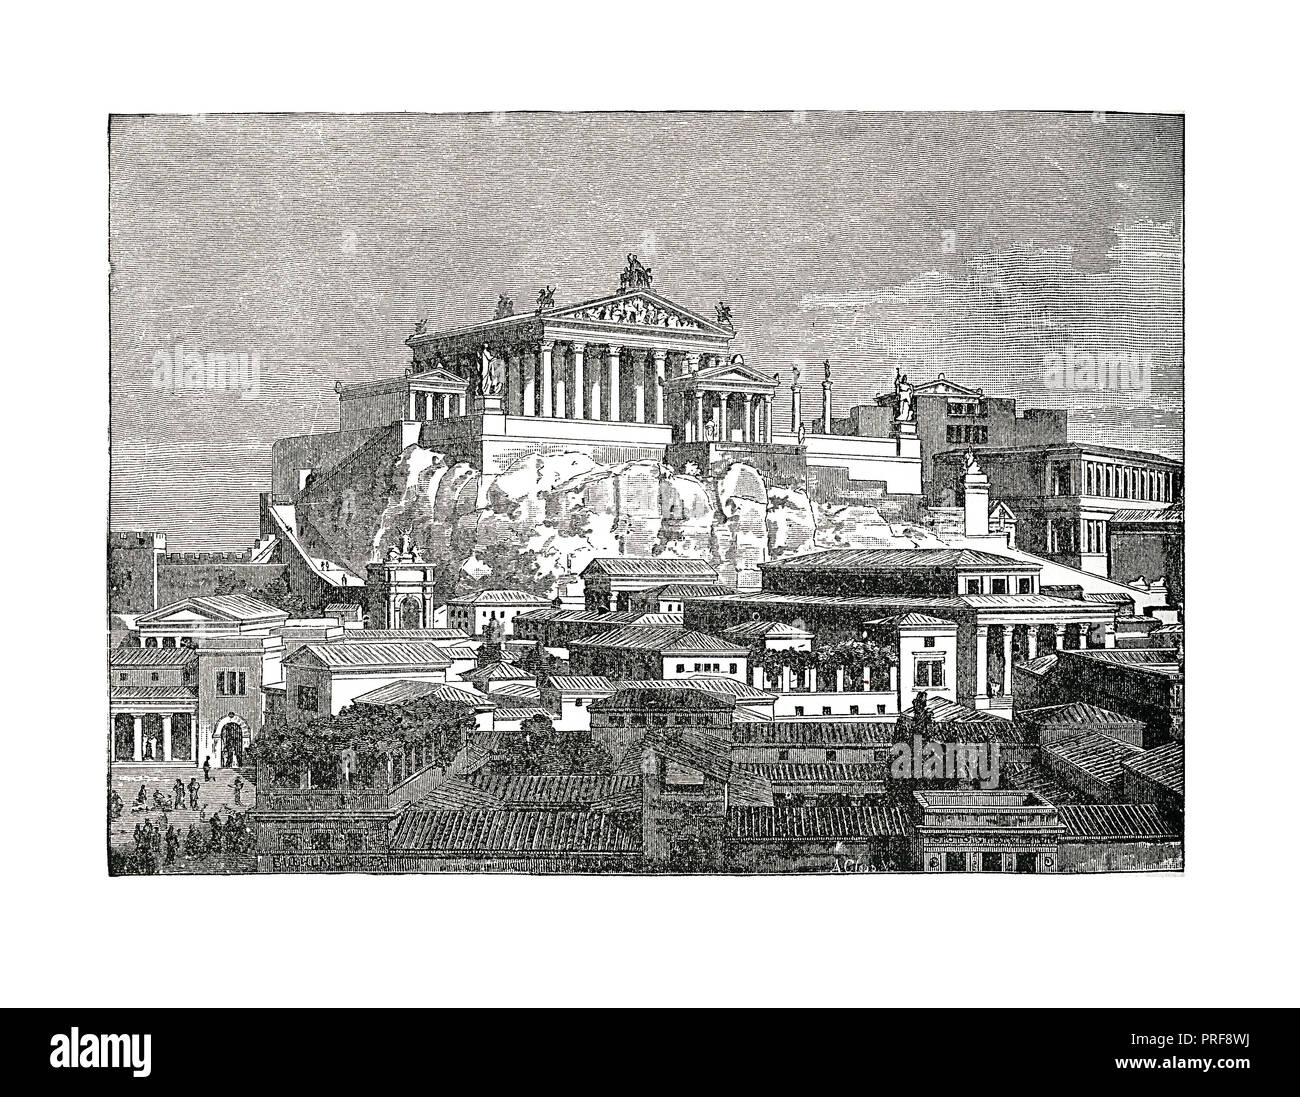 Original artwork of the Capitol - one of the seven hills of Rome, between the Forum and the Campus Martius and . Published in A pictorial history of t - Stock Image